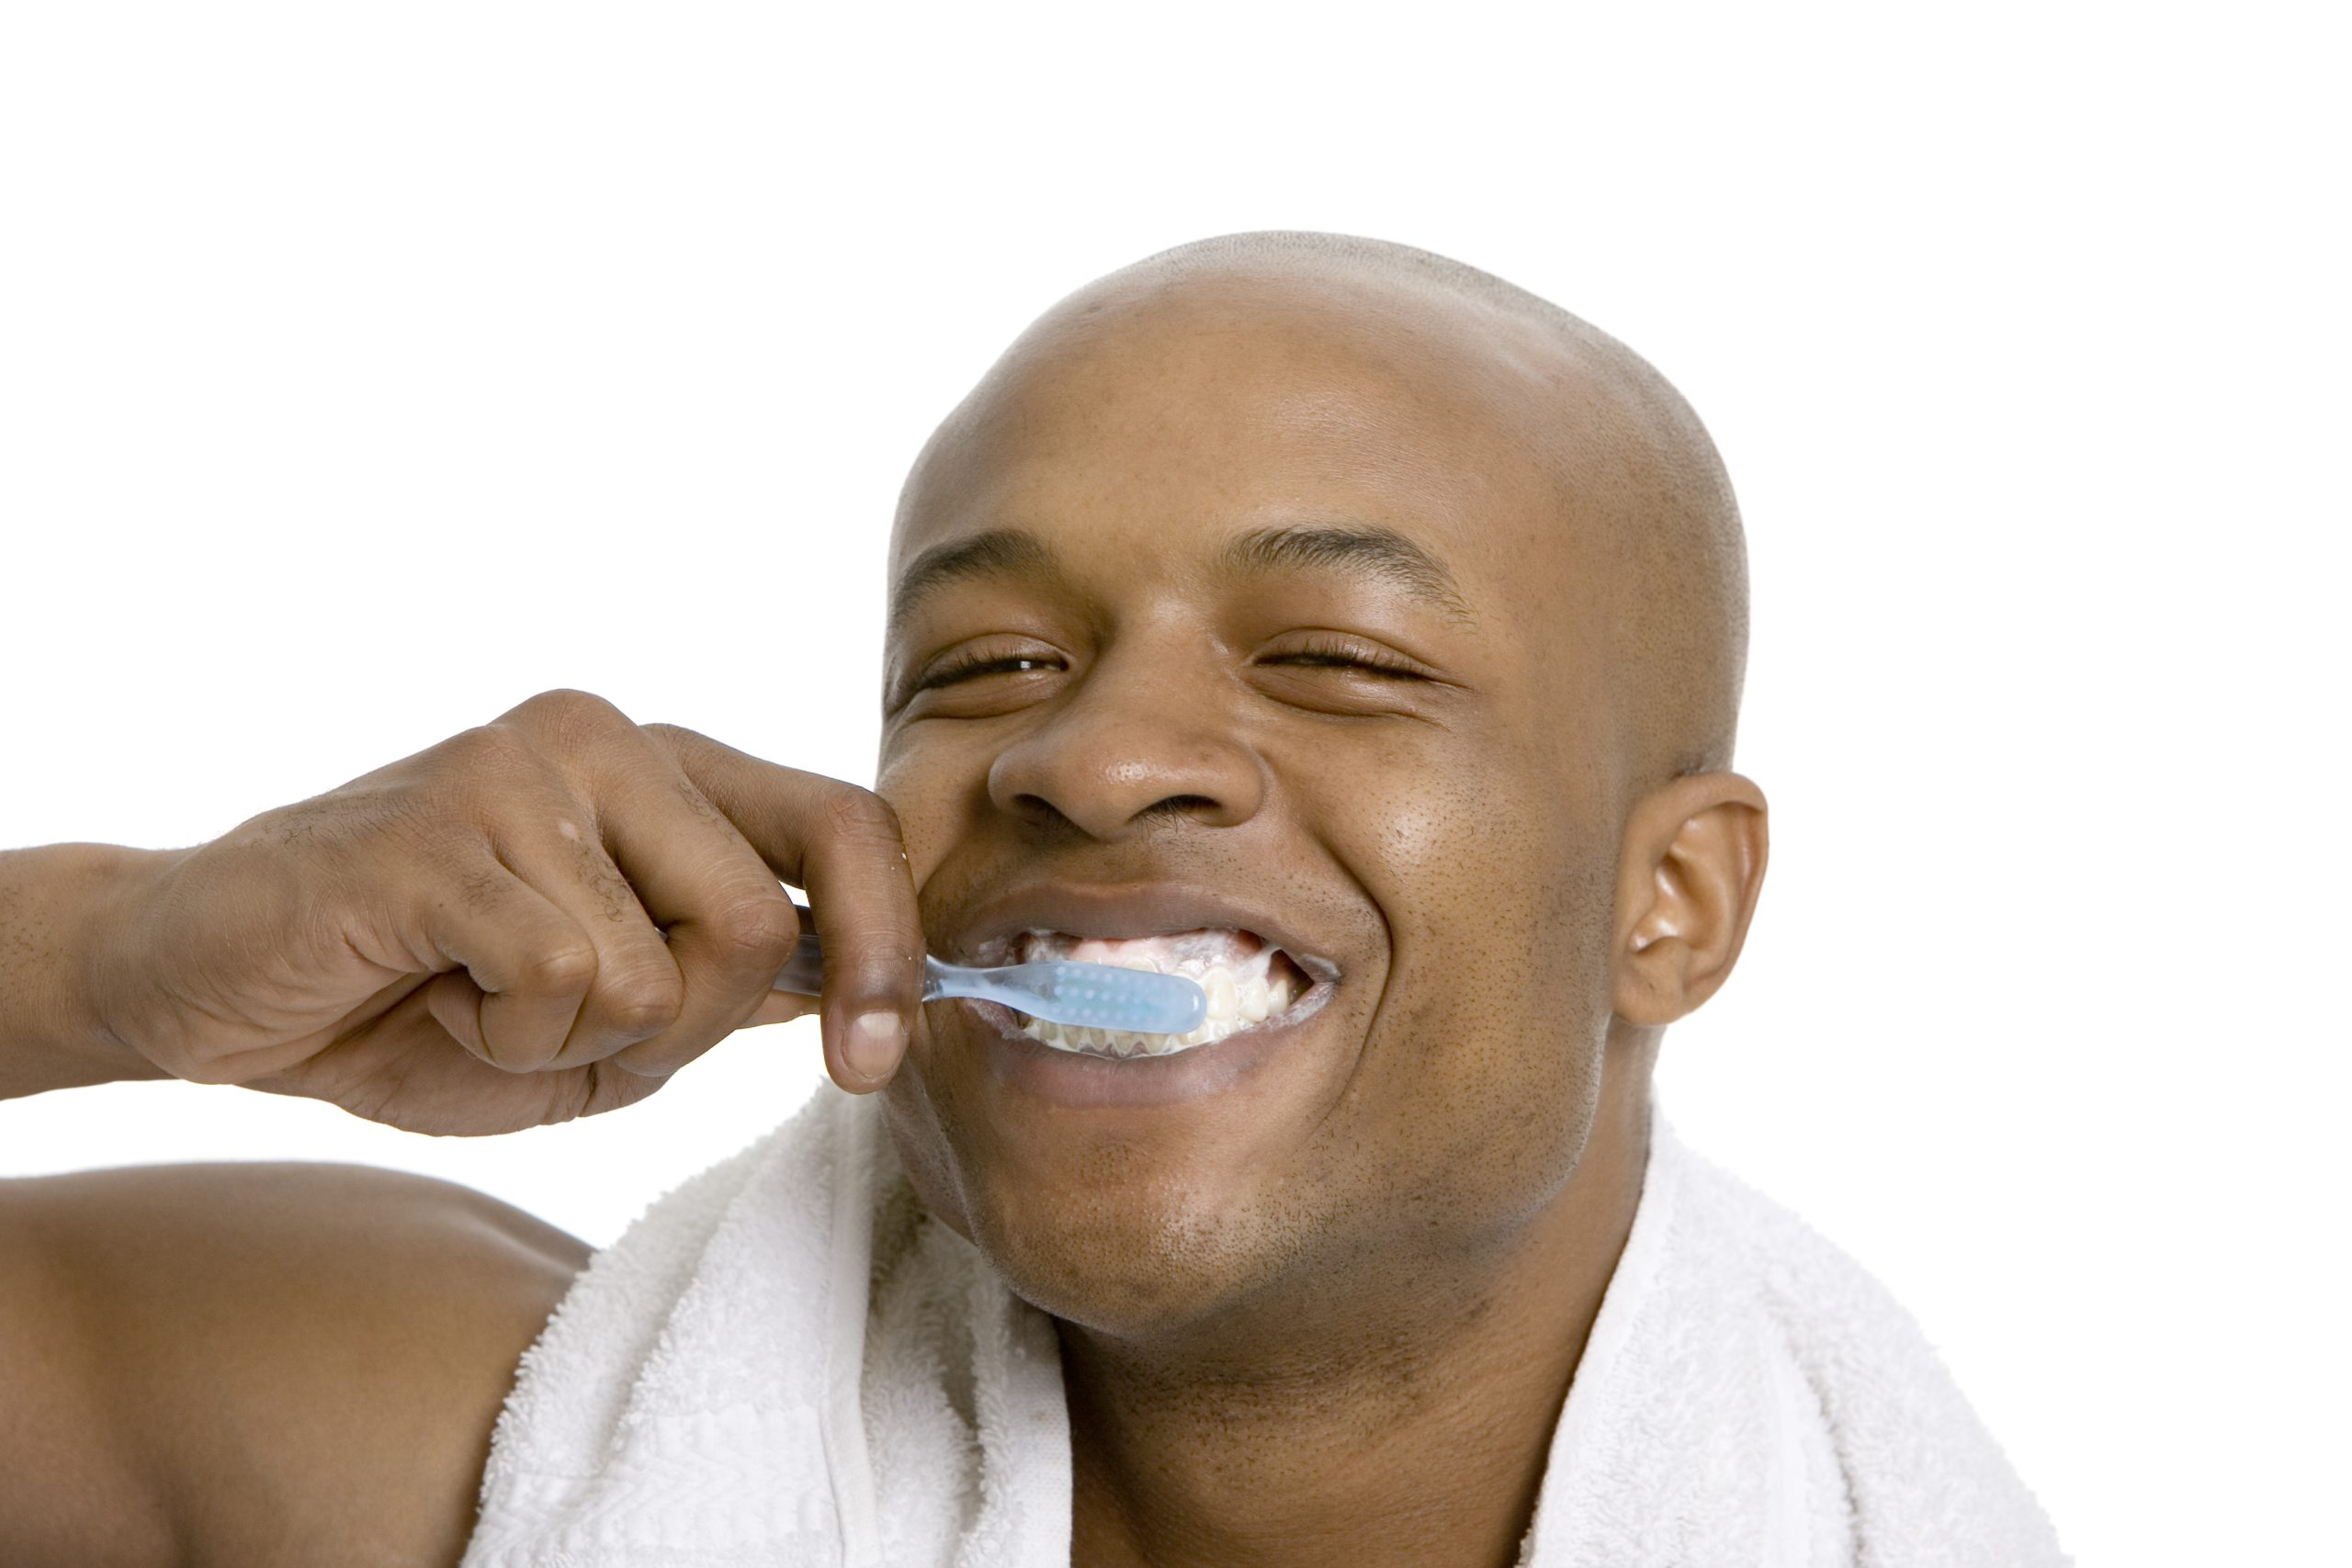 Do's and Don'ts for Dental Care On-The-Go